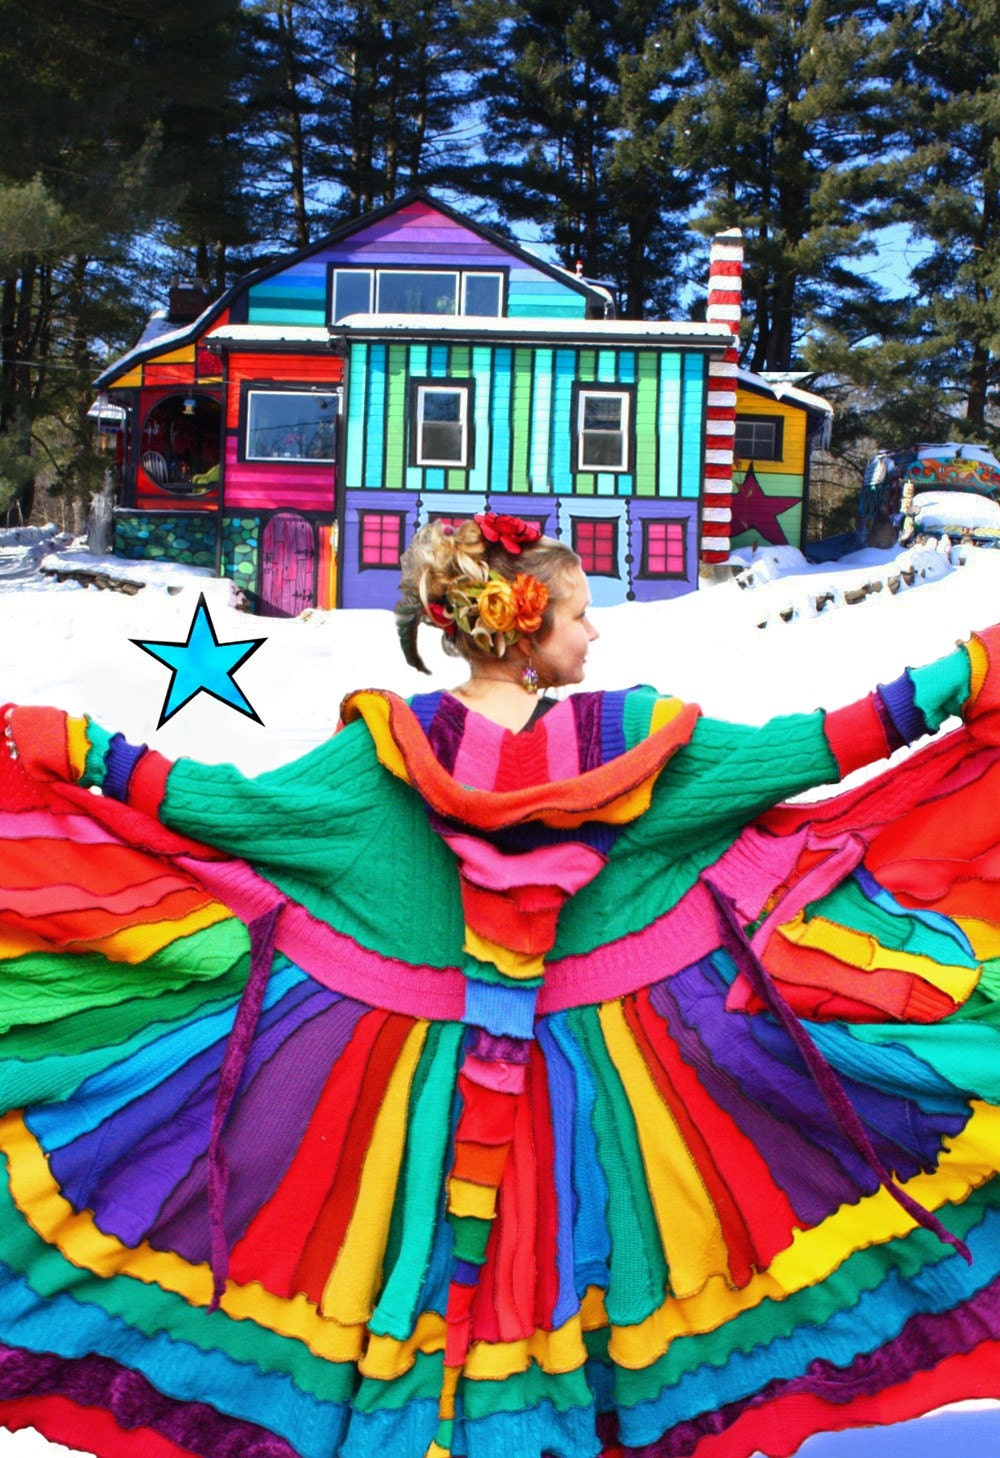 Elf Coat by Katwise - RESERVED for Shannon - Rainbow Magic Carousel Dream coat made from Recycled Sweaters - Upcycled Pixie Couture to keep you cozy in the winter snow and ice